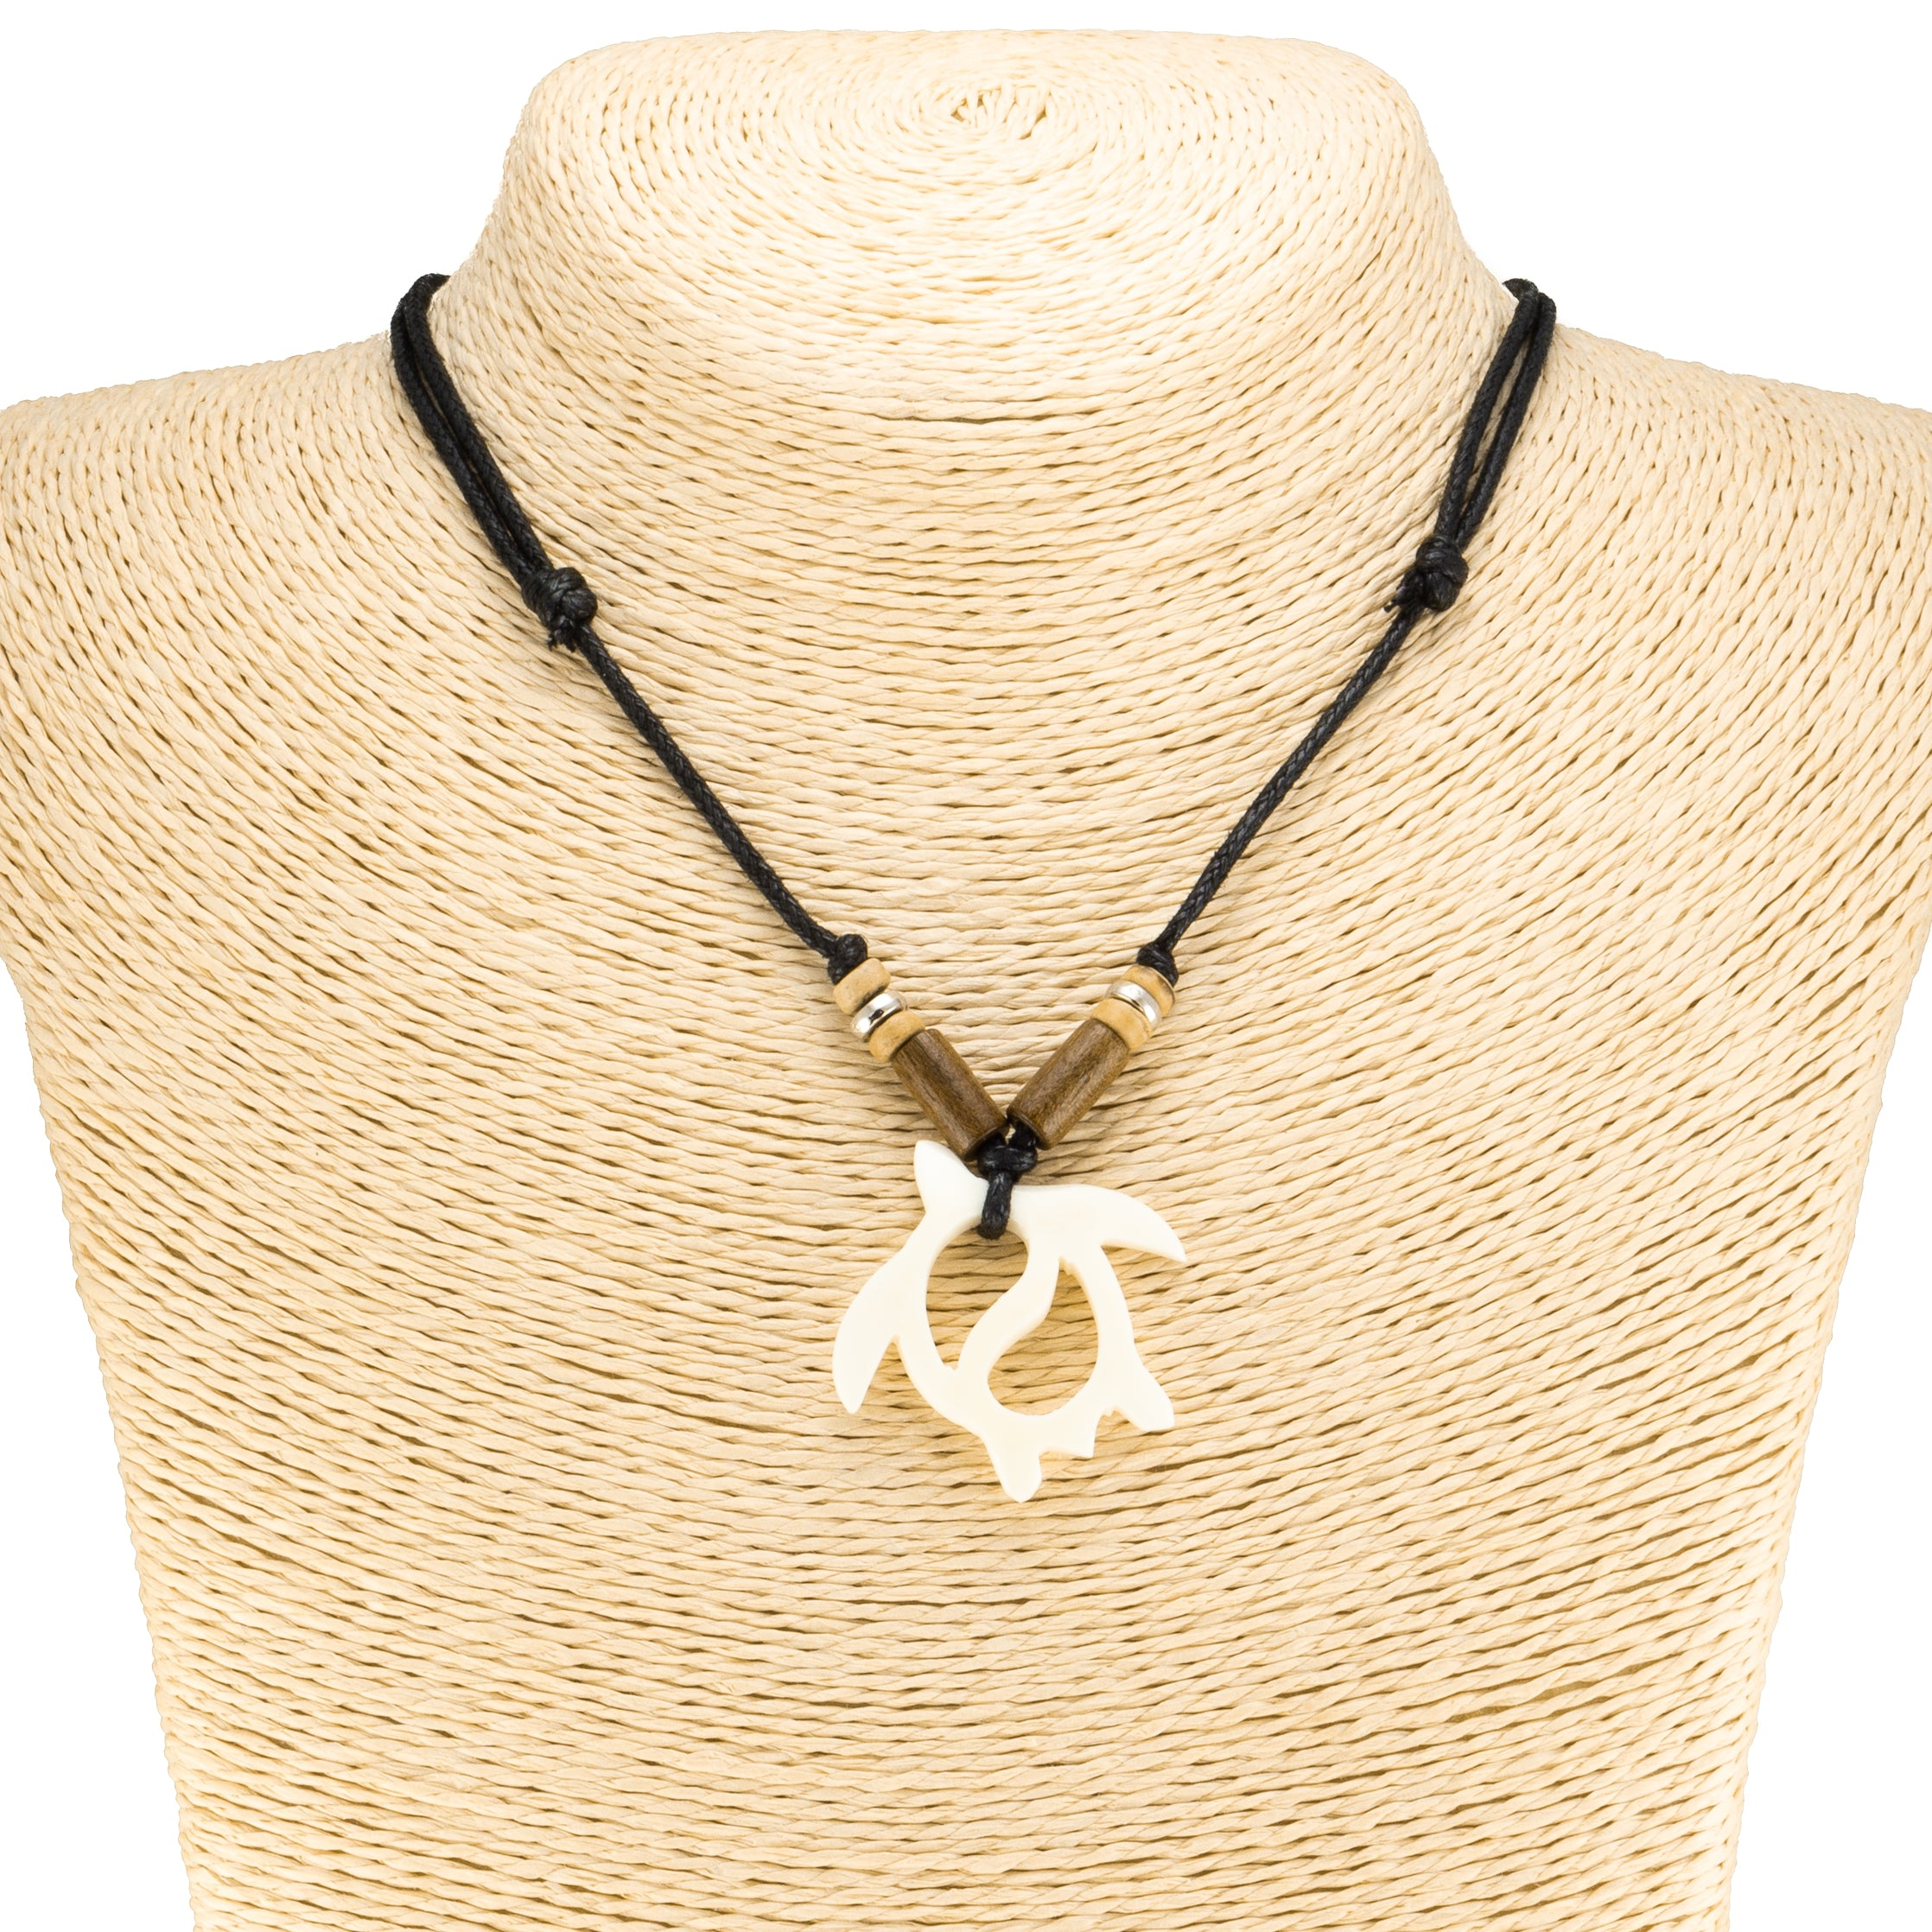 Bone Sea Turtle Pendant on Adjustable Rope Necklace